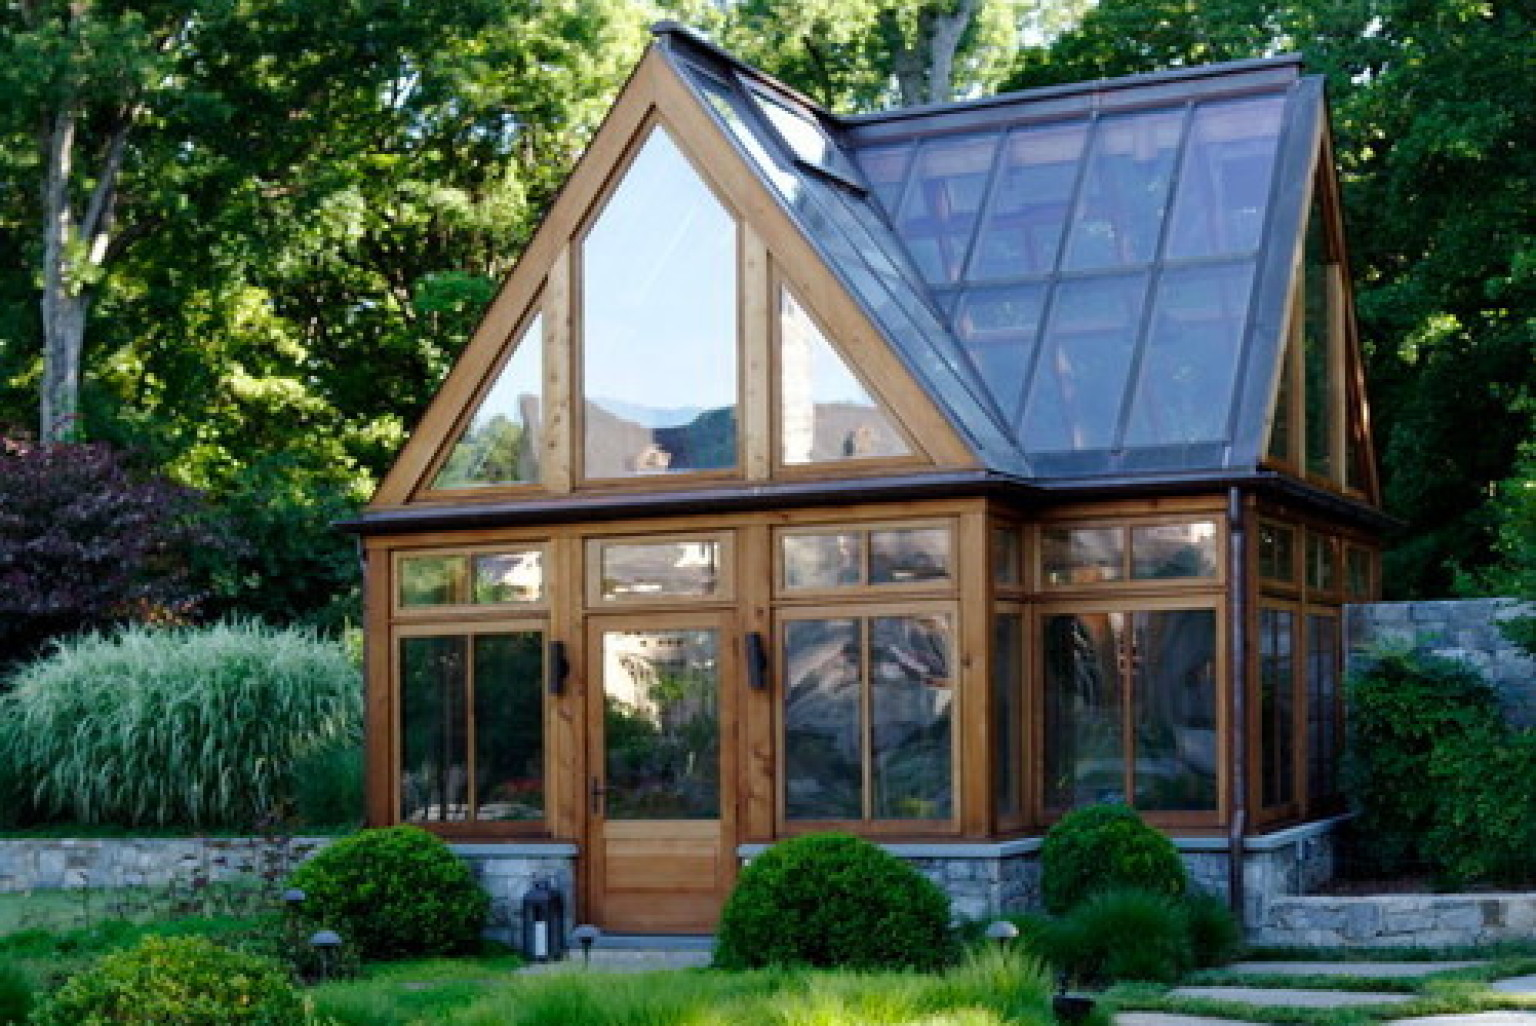 8 Gorgeous Greenhouses That Have Us Wanting To Become Botanists (PHOTOS) |  HuffPost